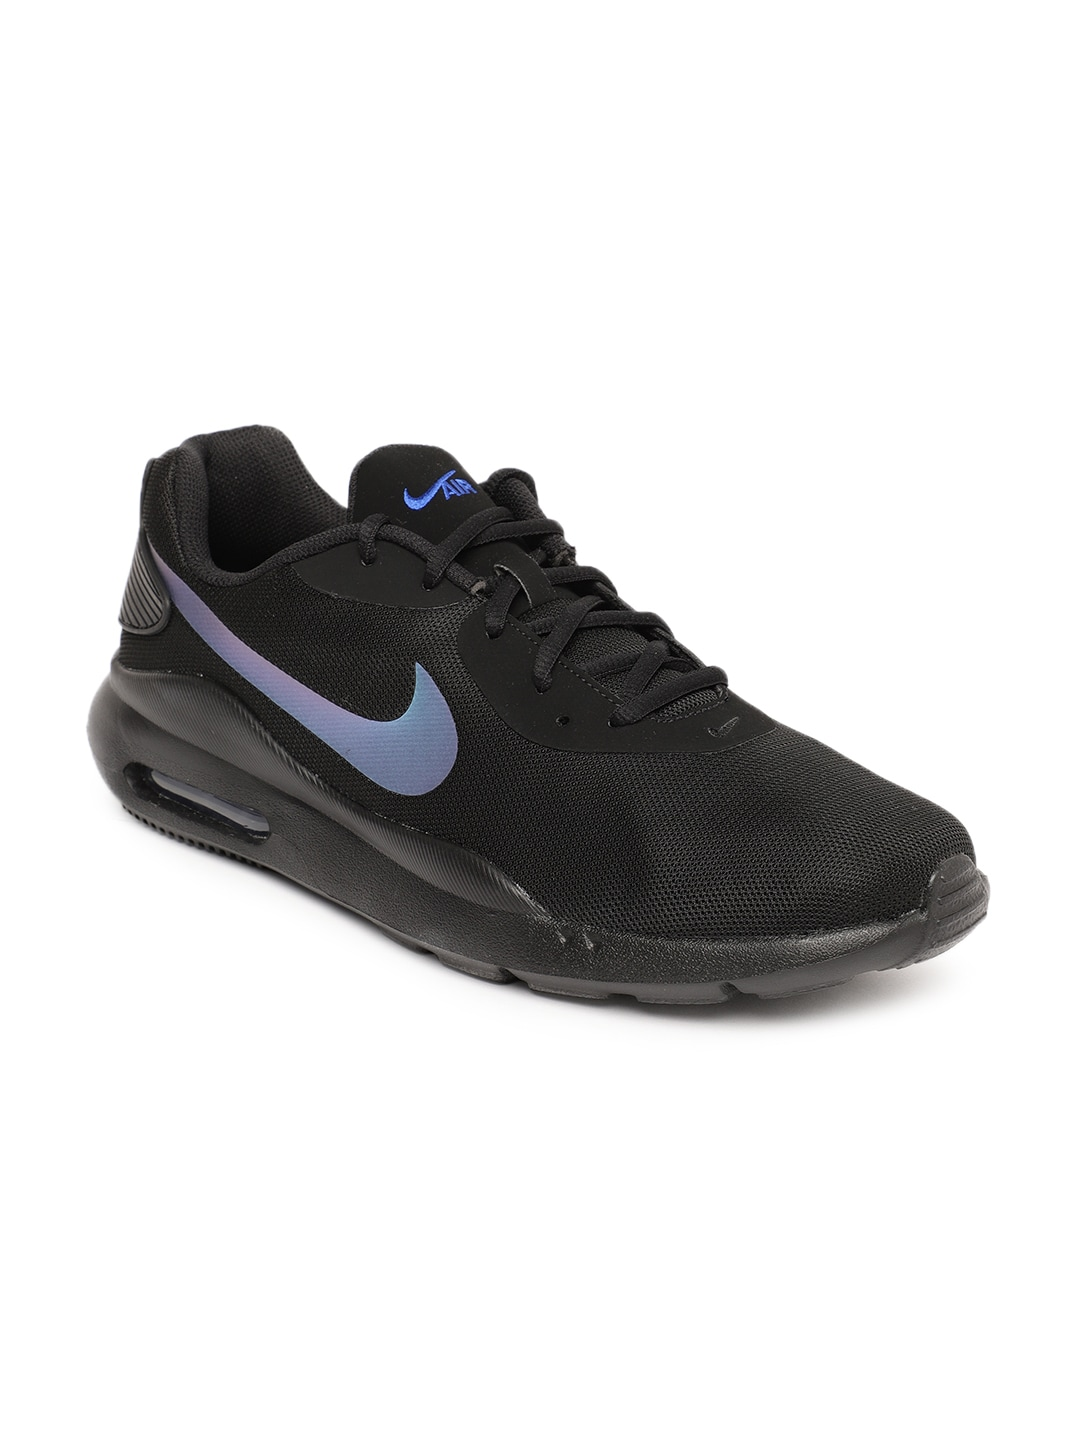 new product aac22 9e90f Nike Air Max - Buy Nike Air Max Shoes, Bags, Sneakers in India